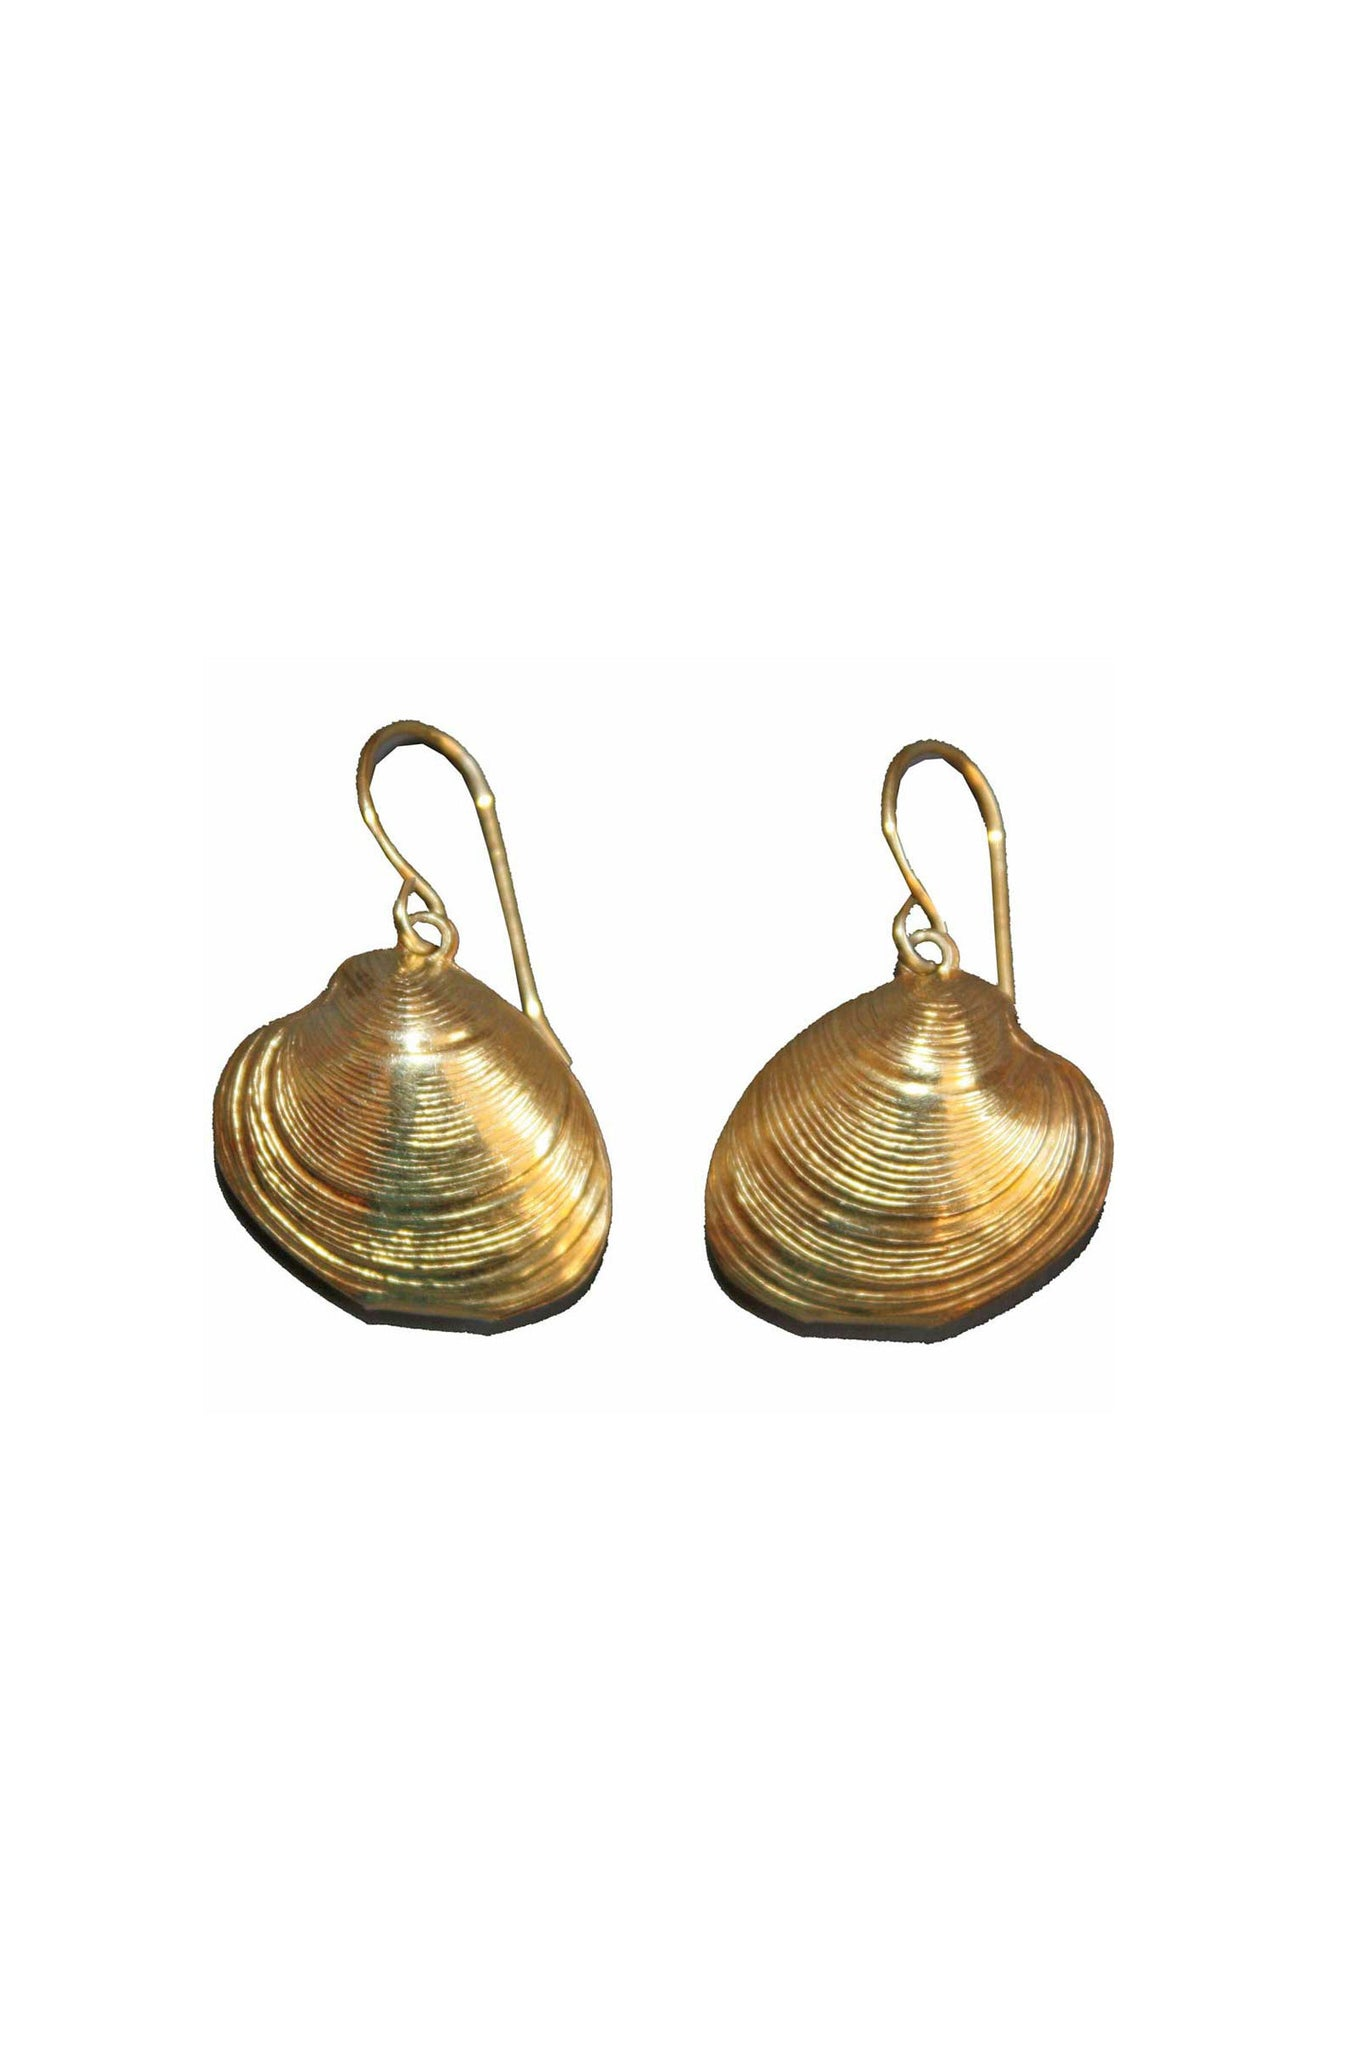 Vintage sea shell shaped earrings in gold plated - SoLovesVintage